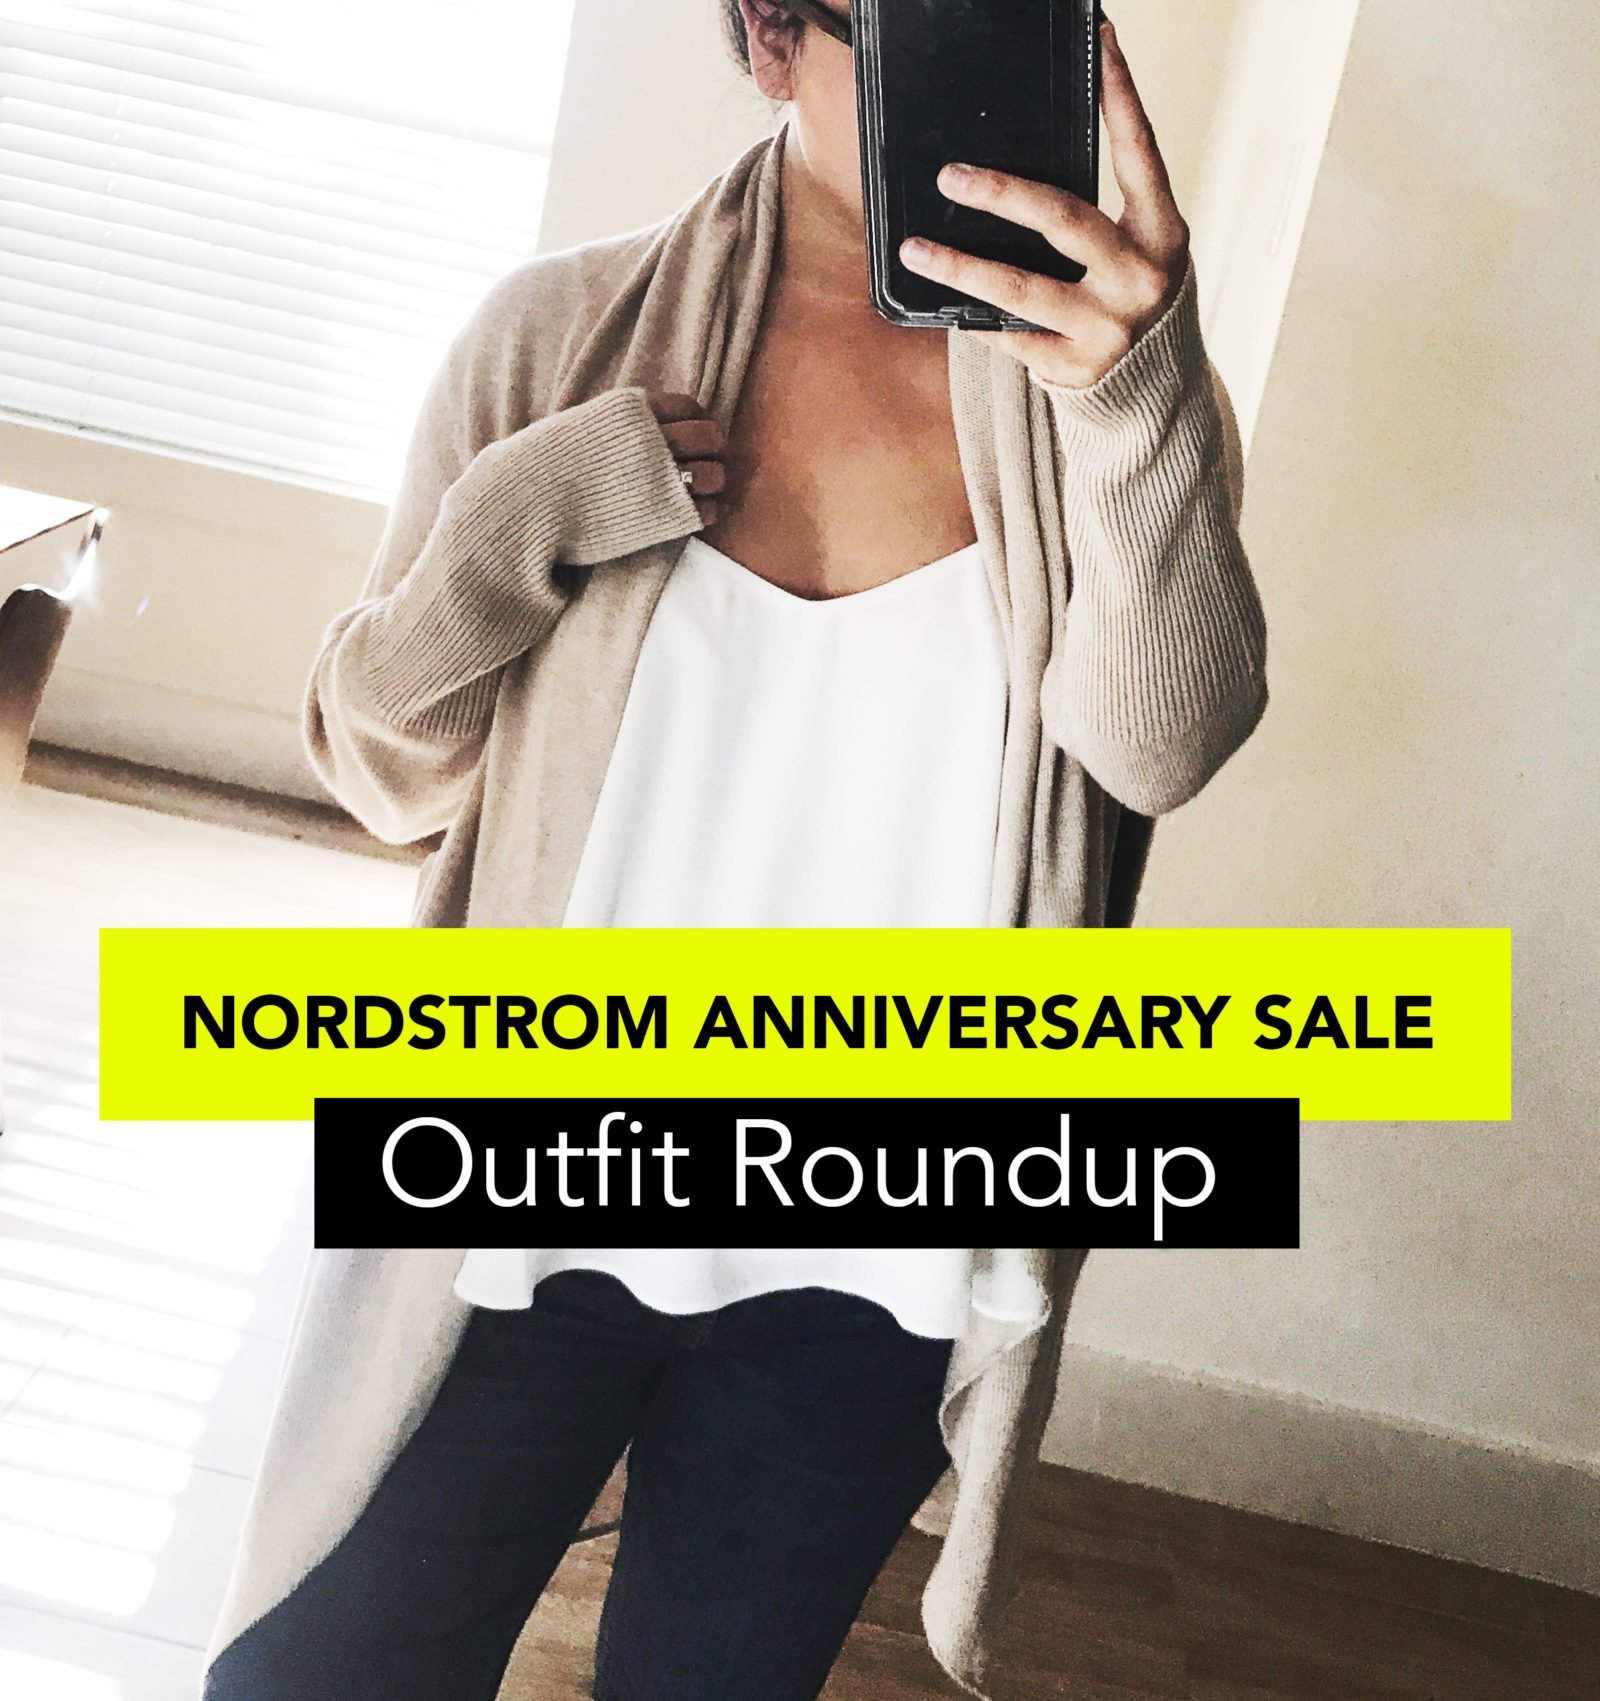 nordstrom anniversary sale 2017 last weekend to save. Black Bedroom Furniture Sets. Home Design Ideas